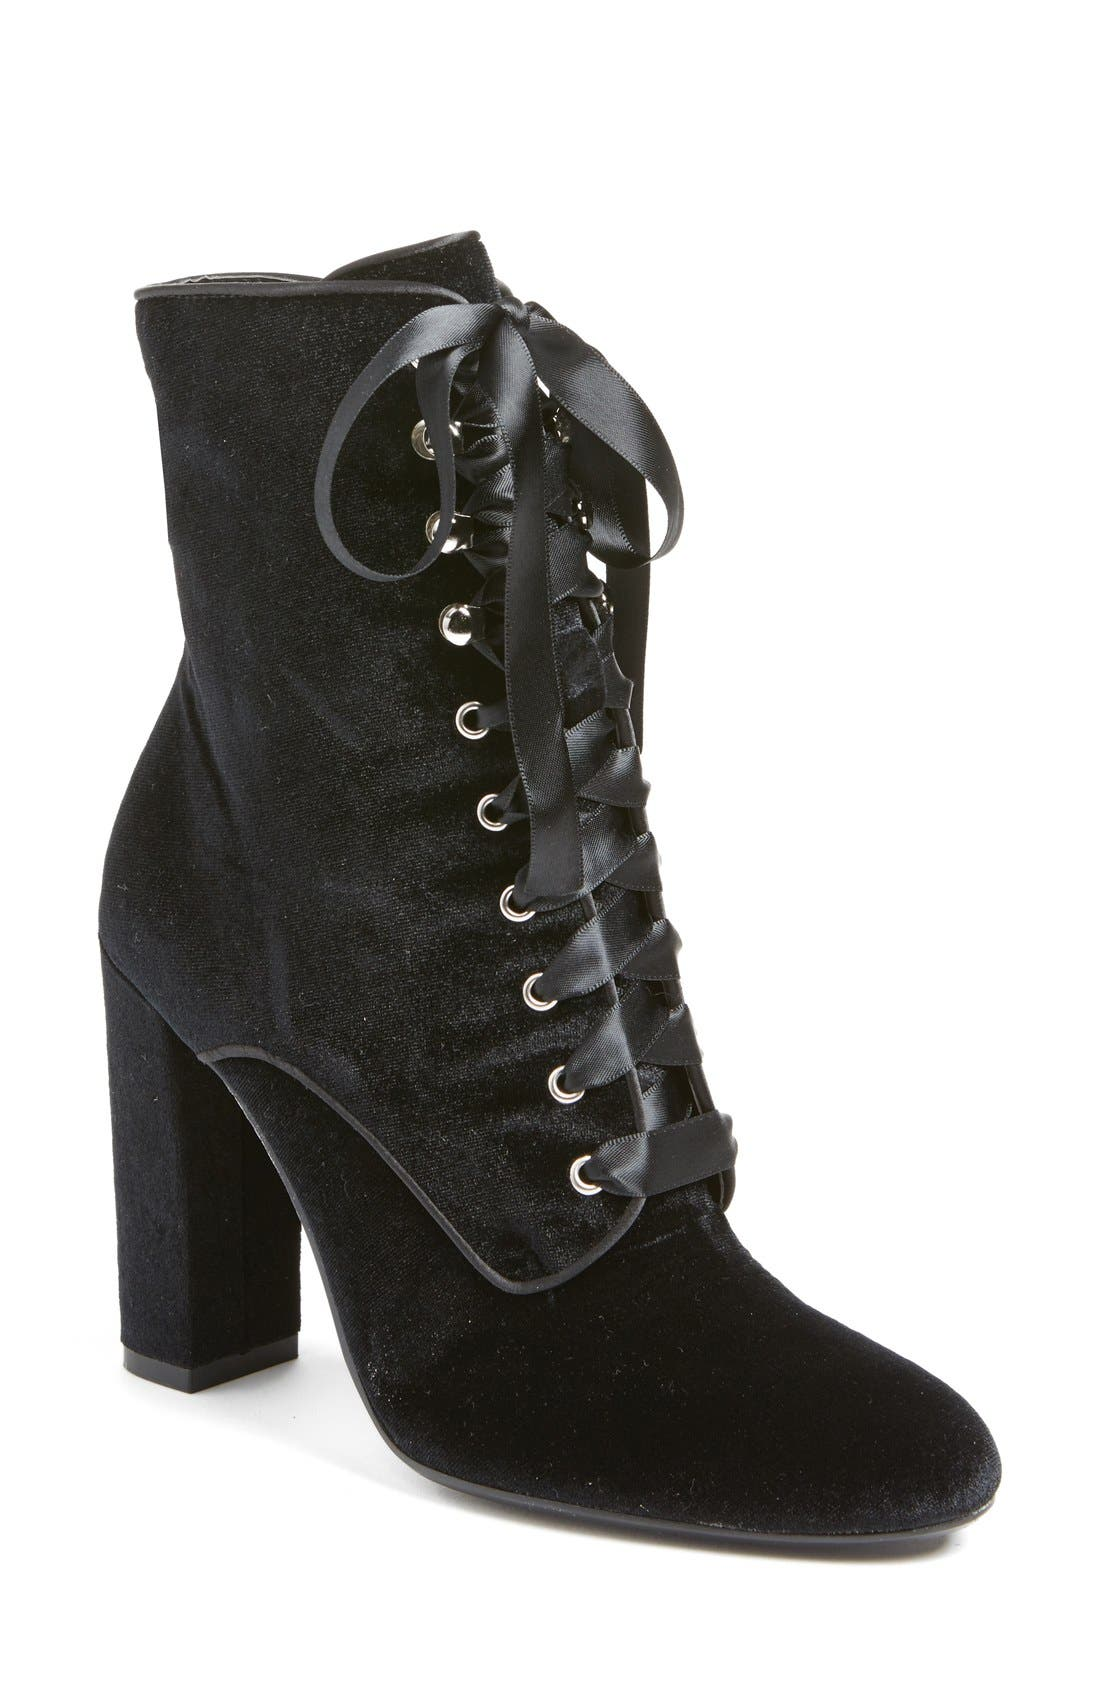 Main Image - Steve Madden 'Evolved' Lace-Up Bootie (Women)